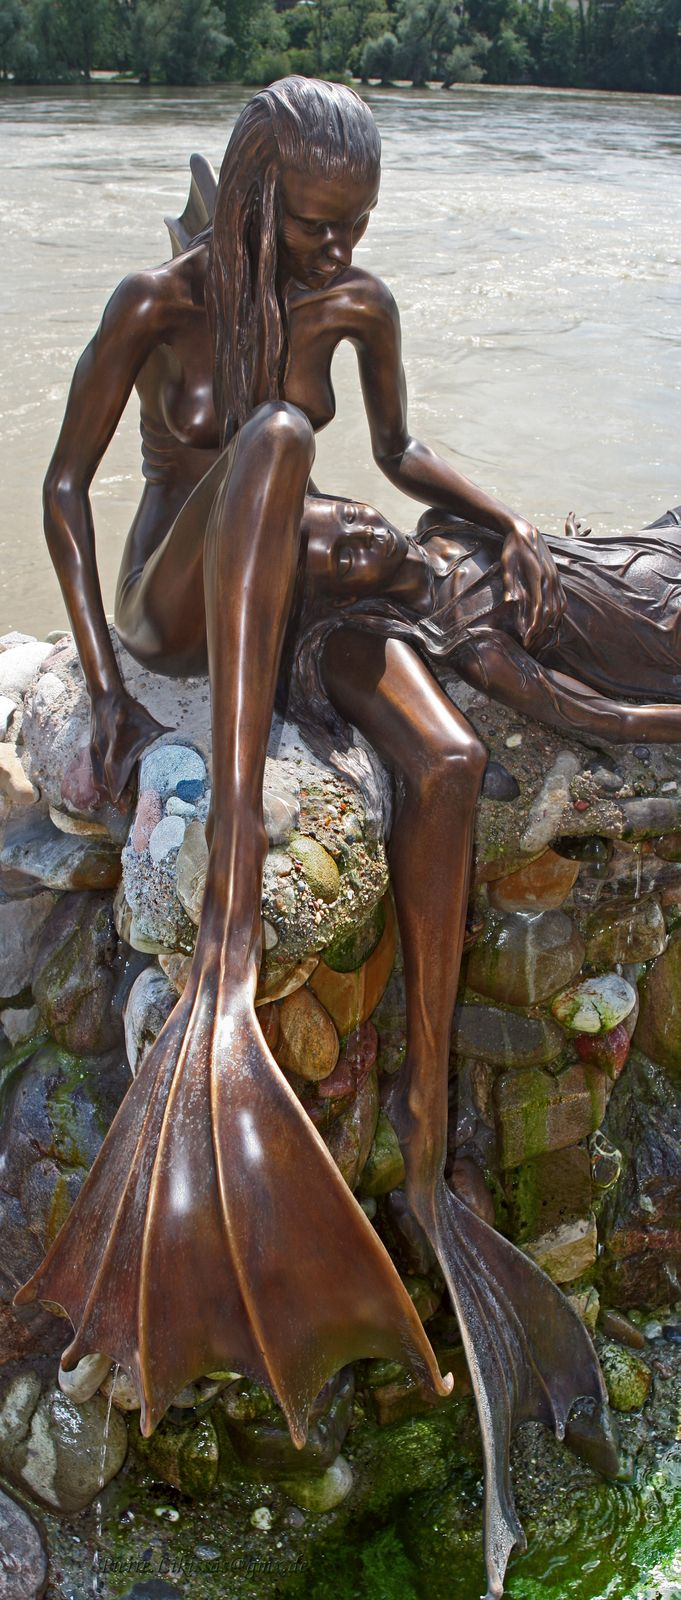 mermaid statue in Rheinfelden, photo by Pierre Likissas